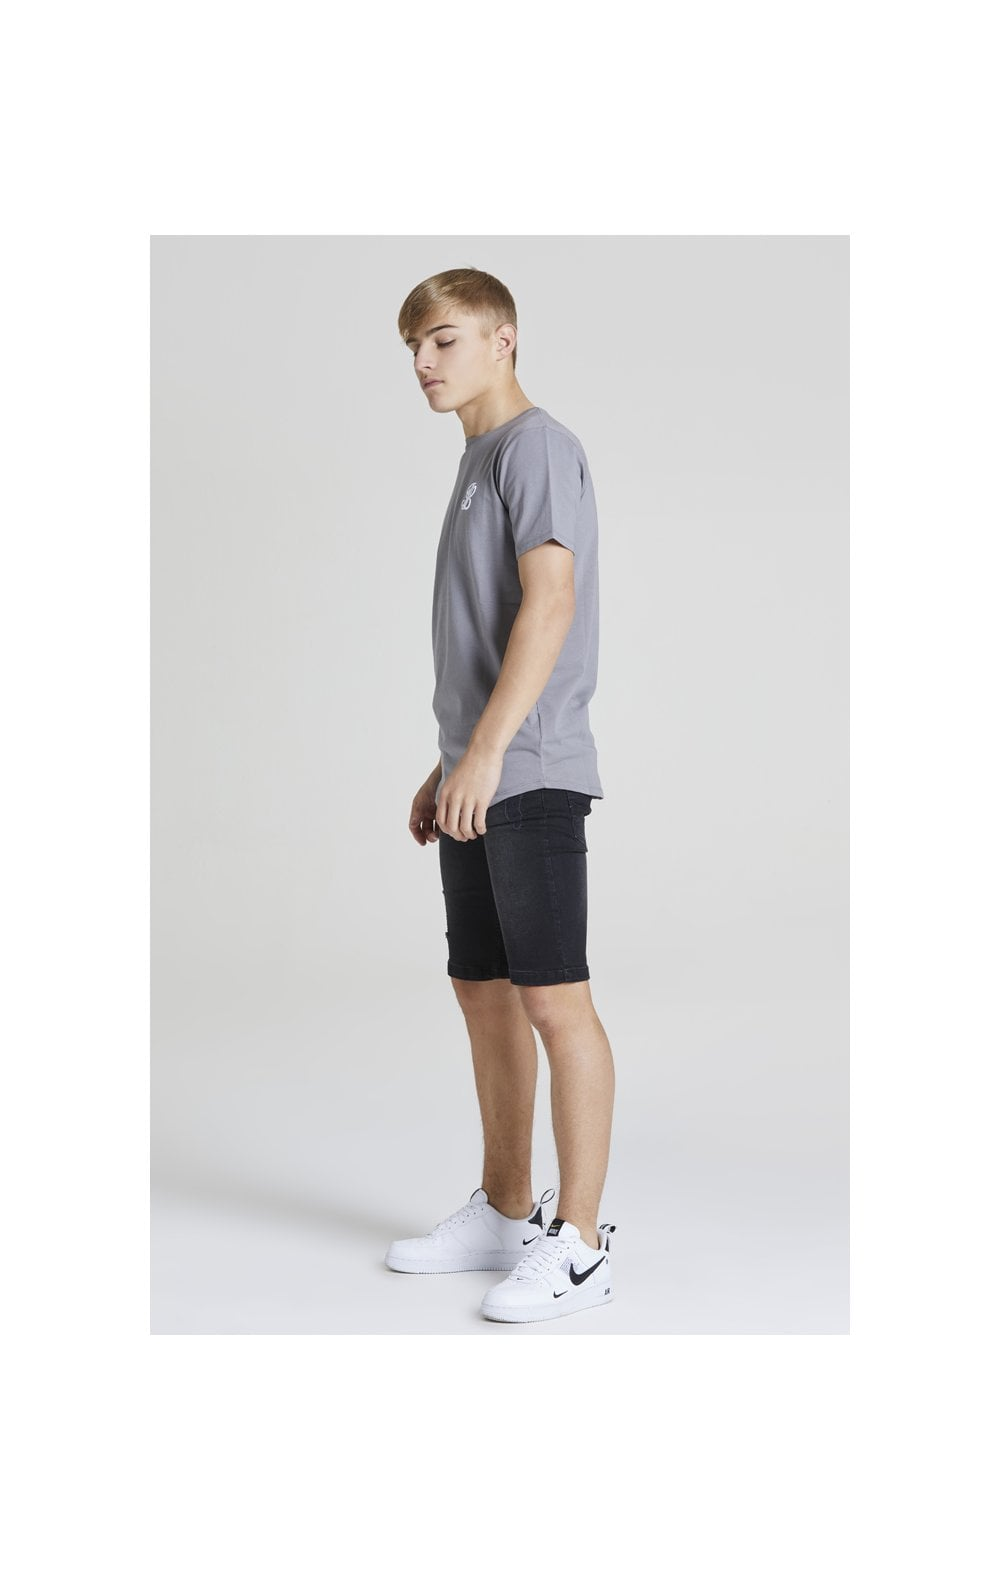 Illusive London S/S Core Tee - Grey (2)